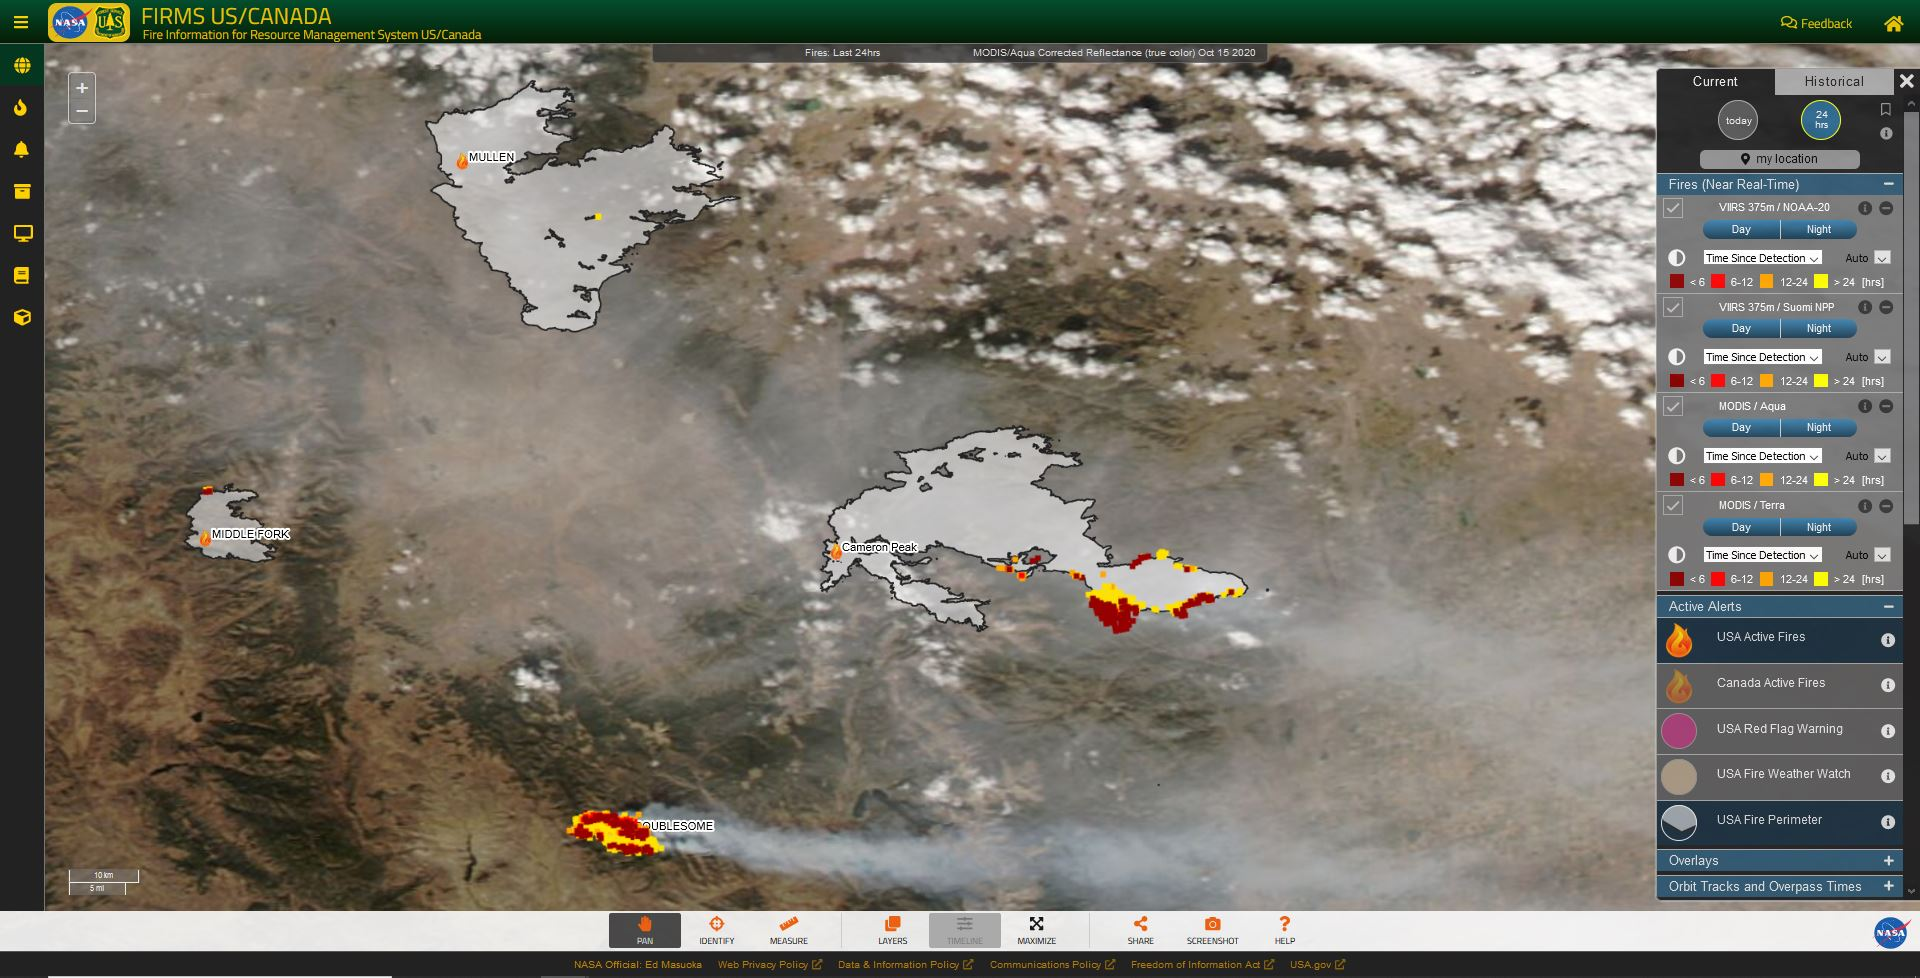 A screen capture from FIRMS US/Canada showing active fire detections and time since detection